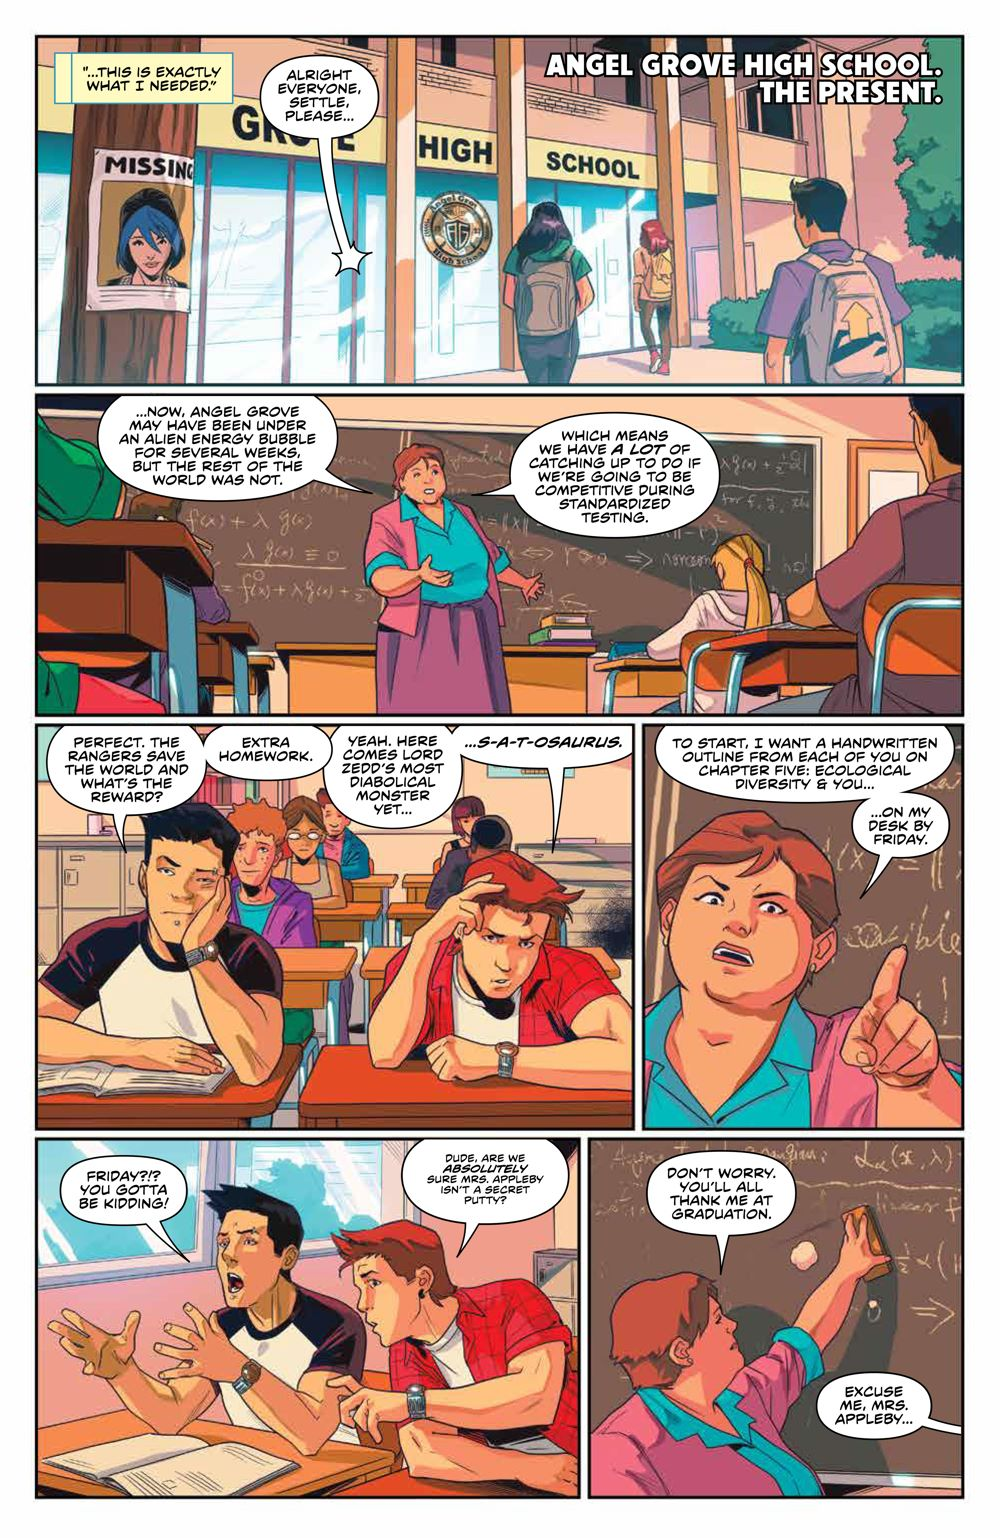 Mighty_Morphin_009_PRESS_6 ComicList Previews: MIGHTY MORPHIN #9